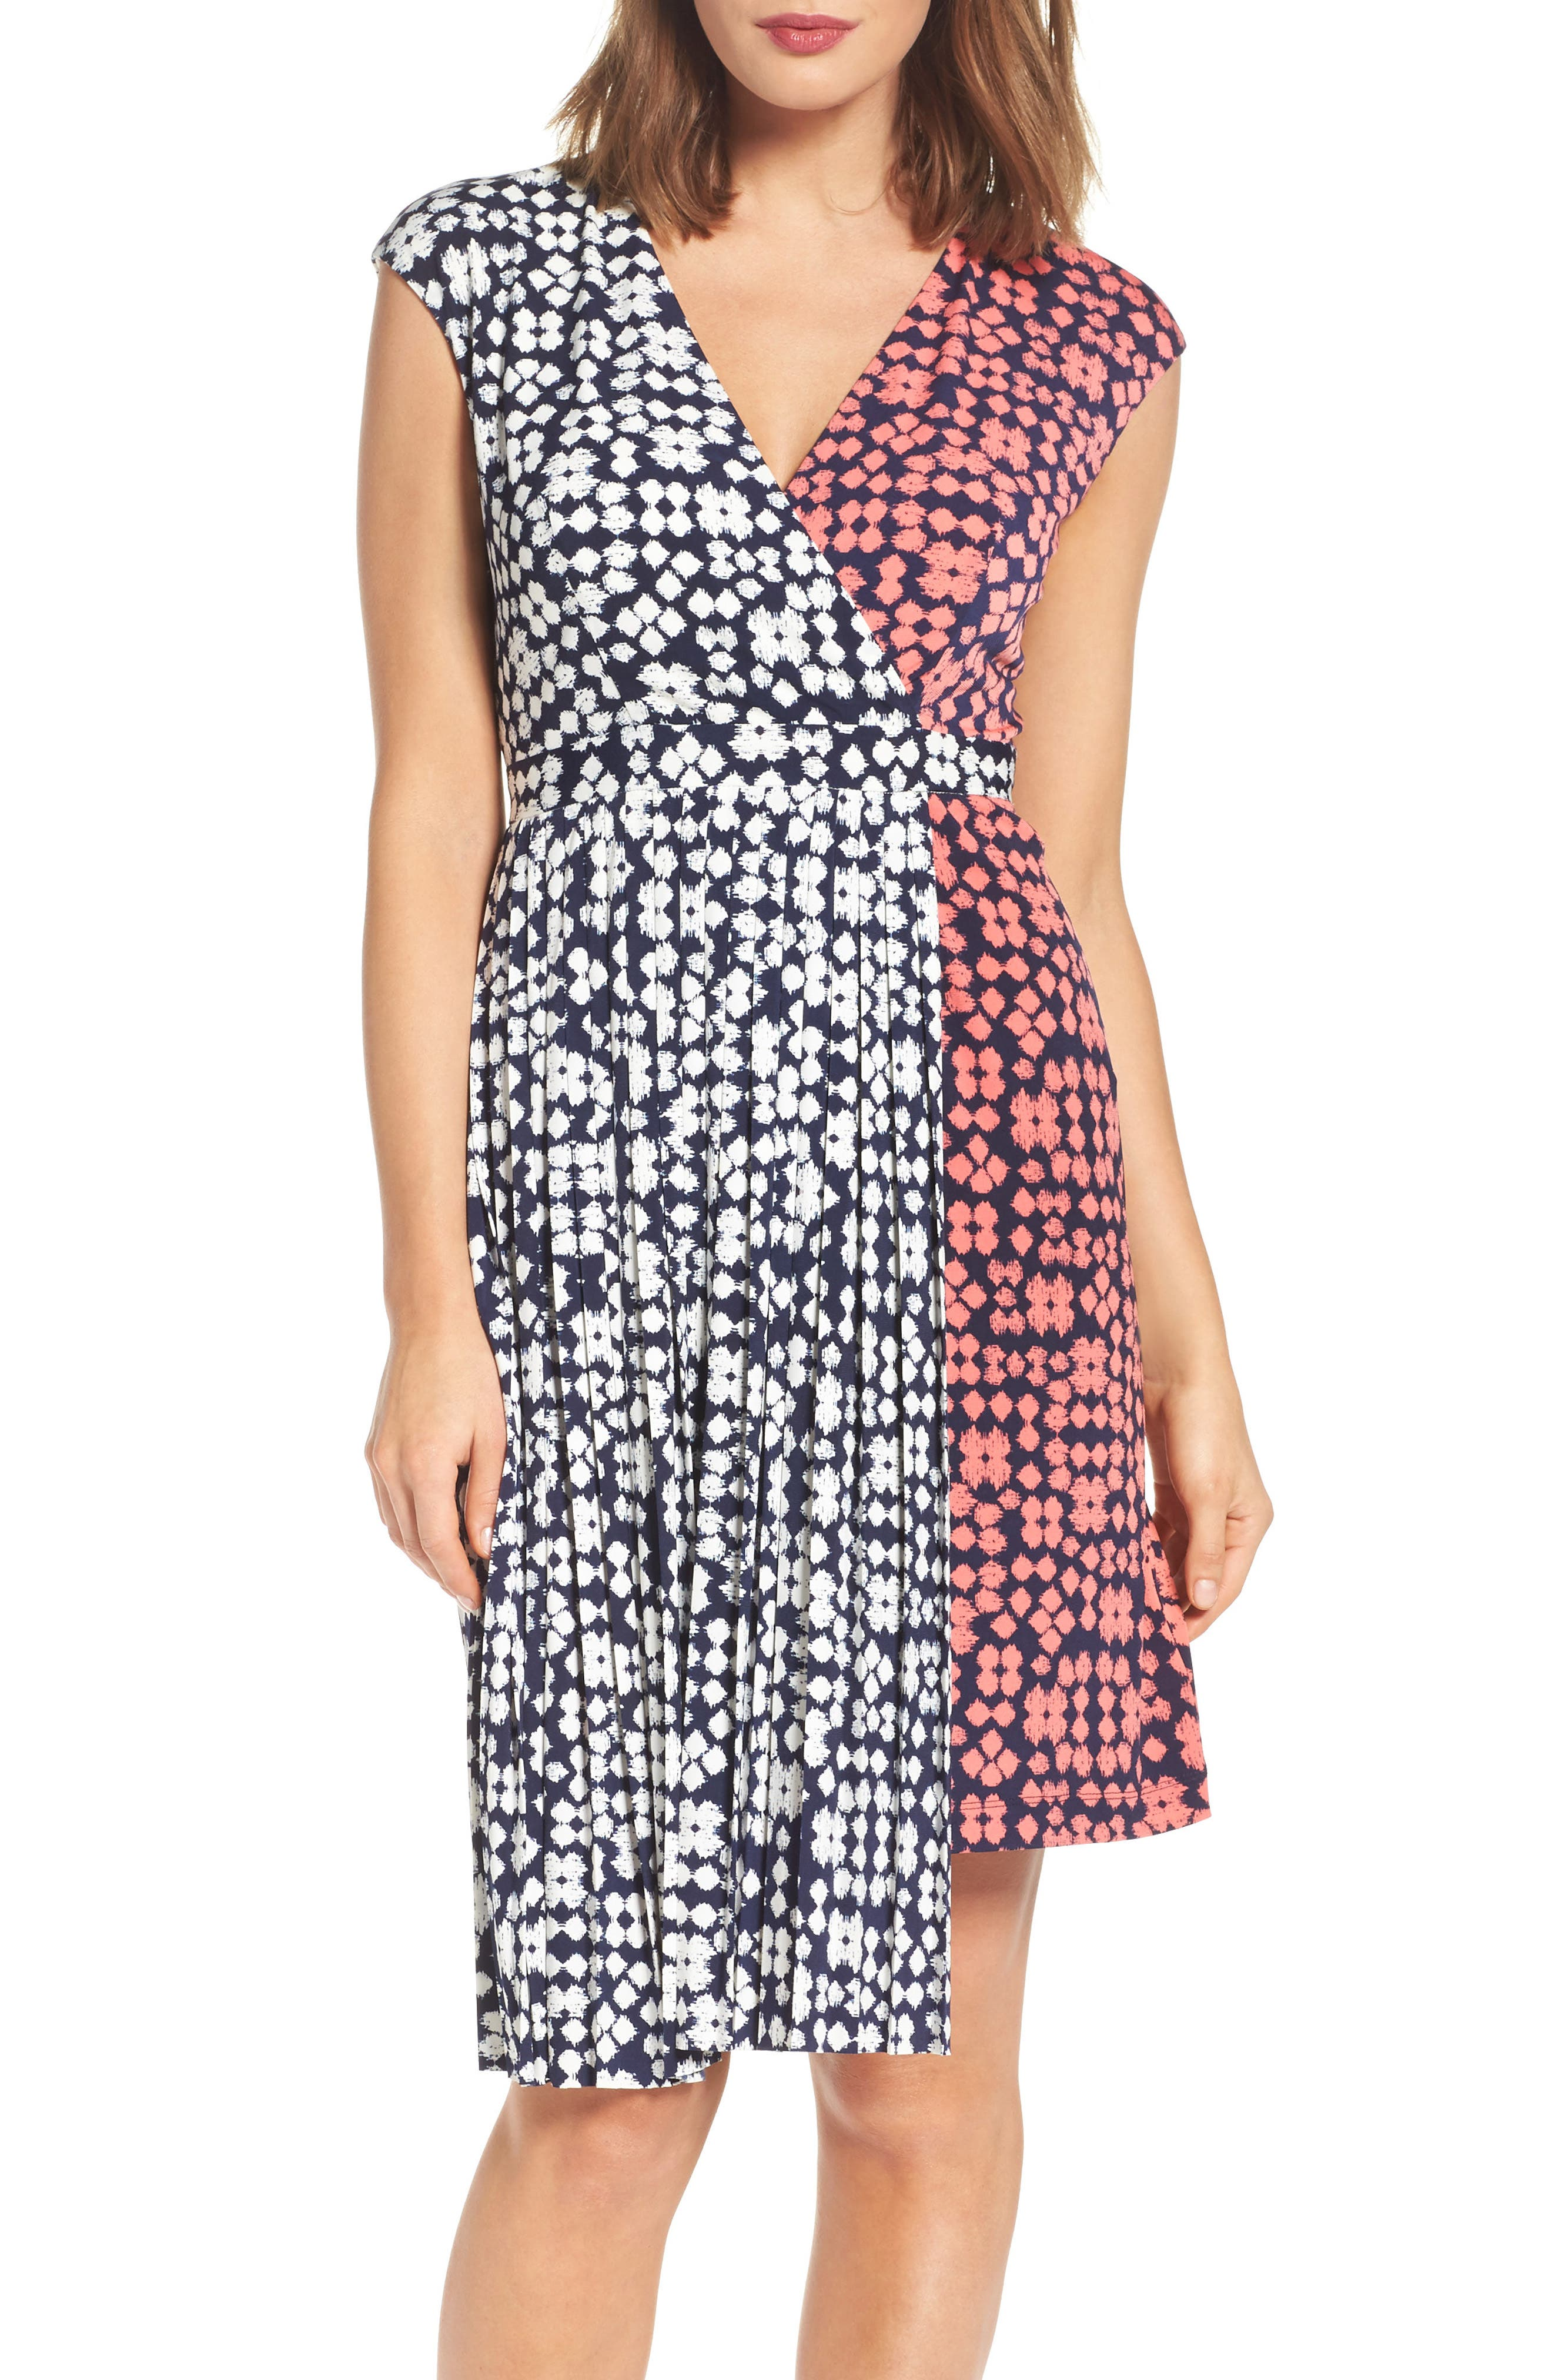 Main Image - Maggy London Print Faux Wrap Dress